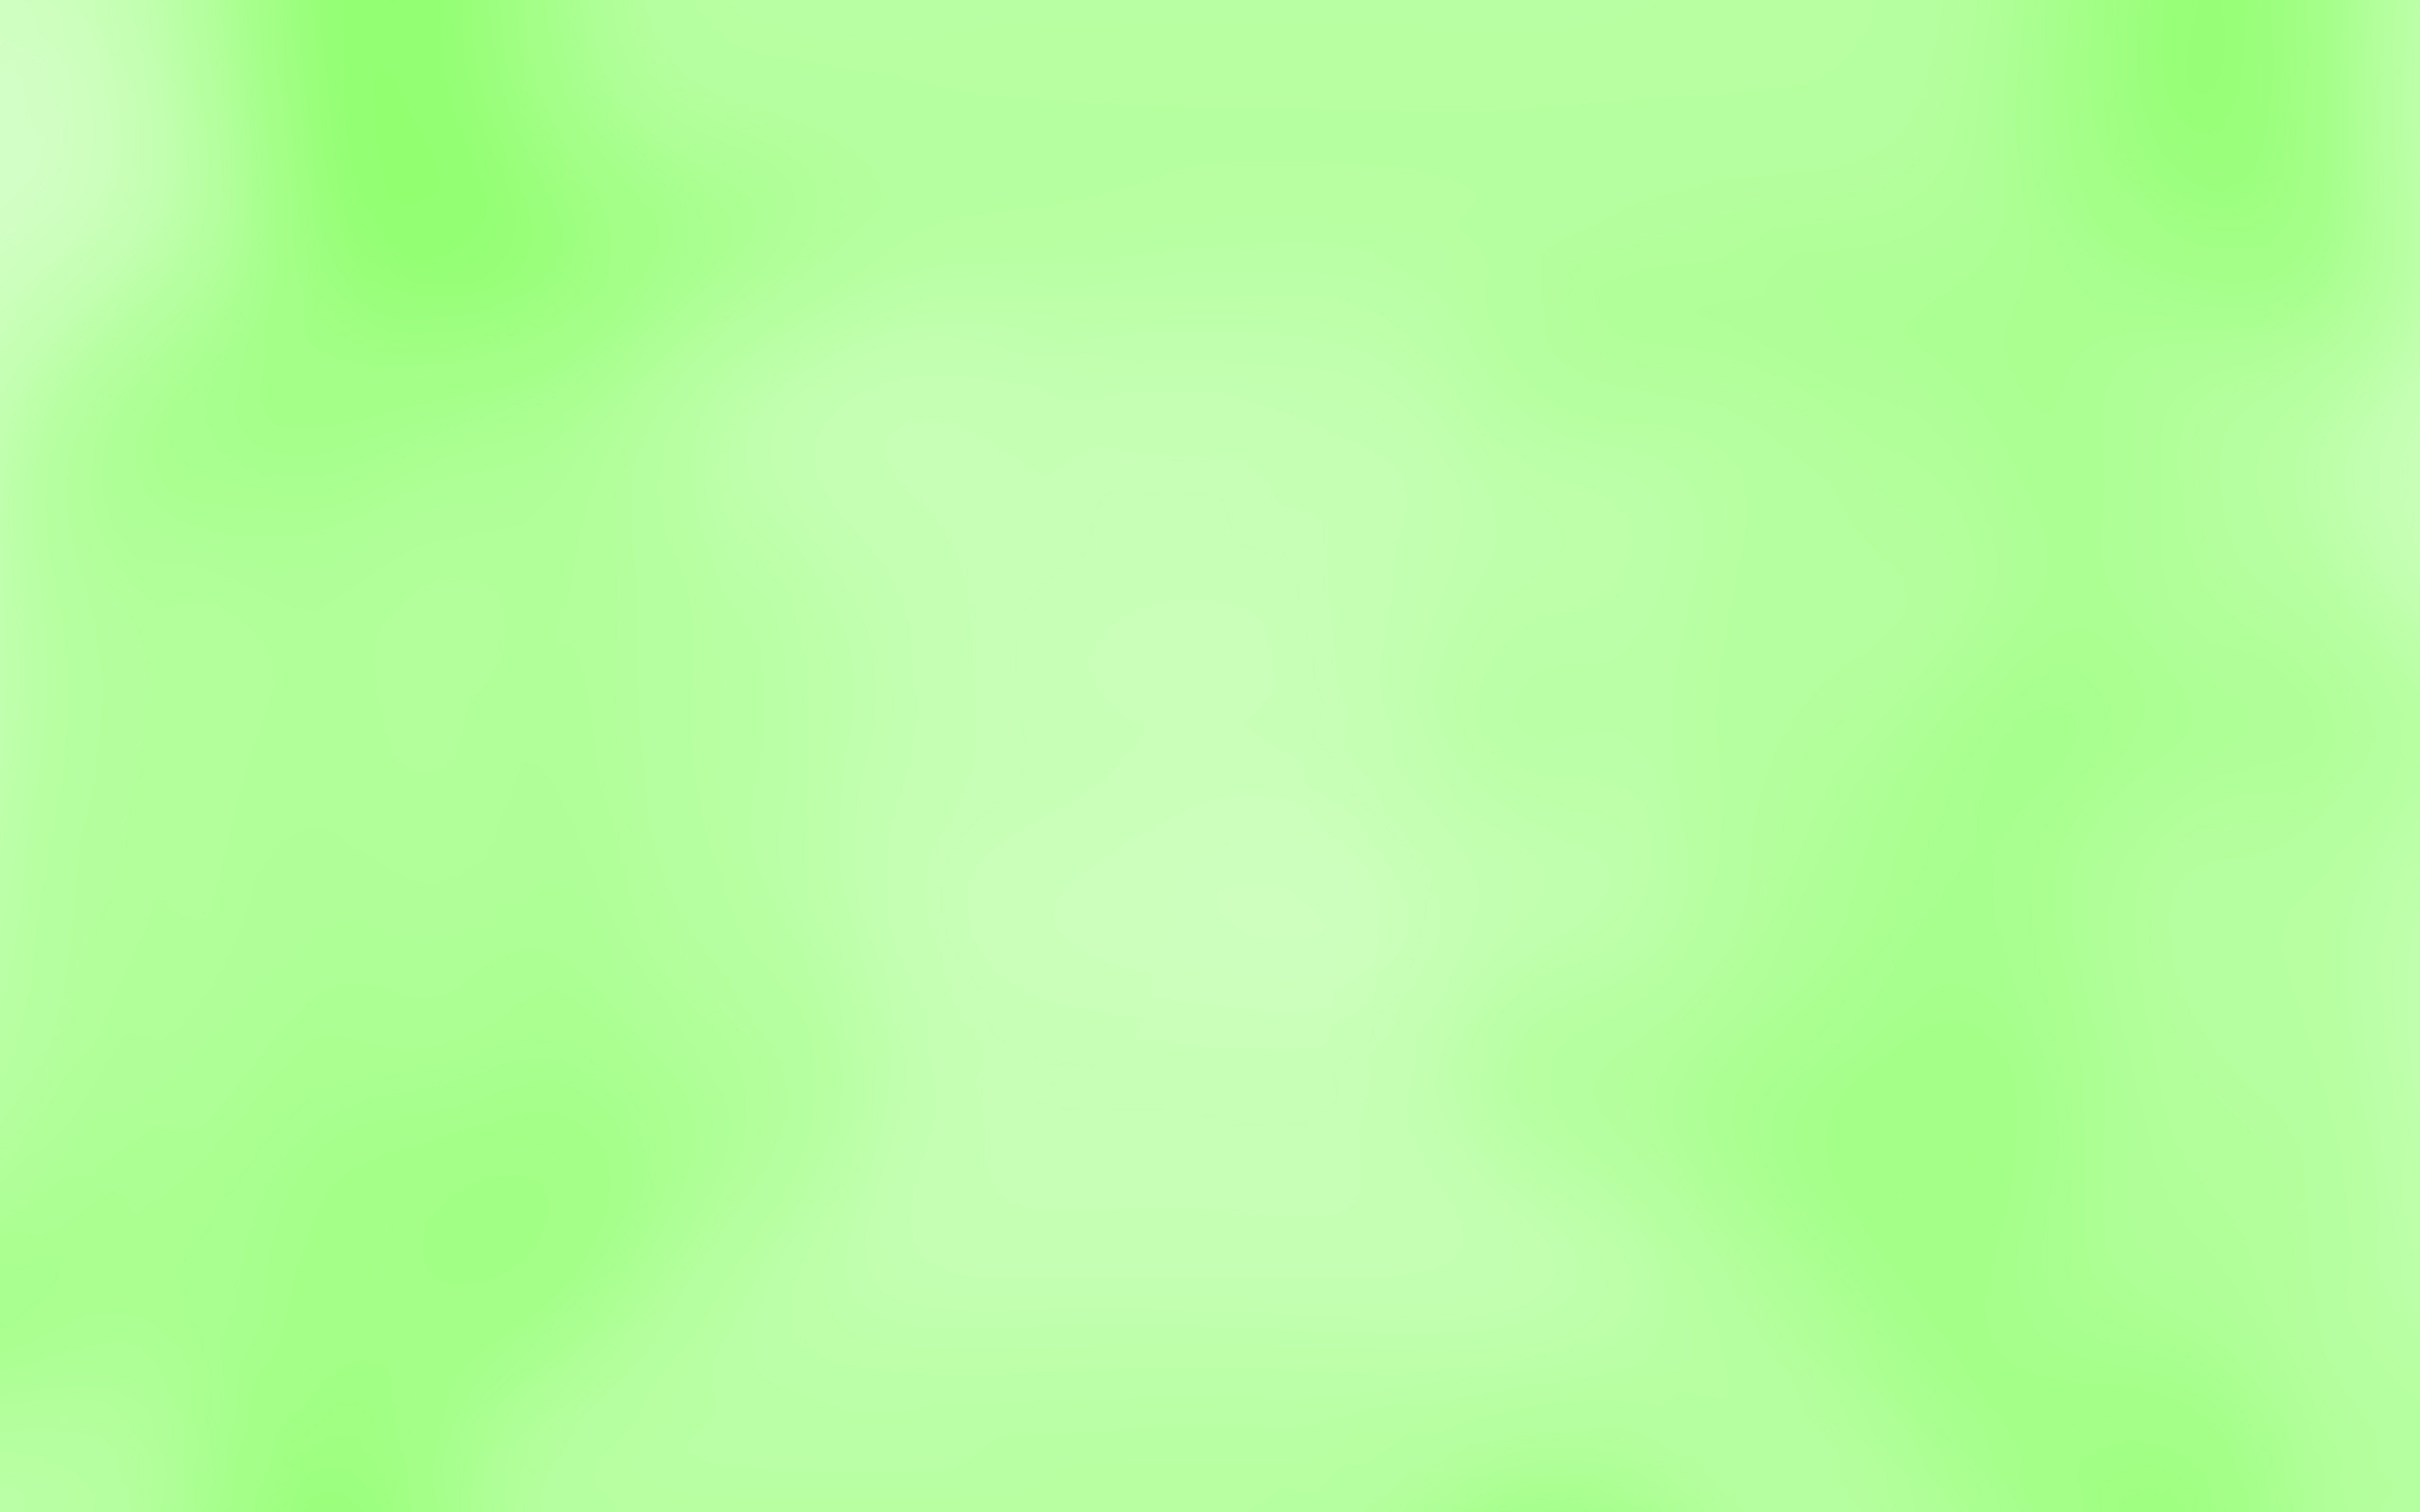 2560x1600 0 Light Green Background Wallpaper Light Green Background Website Slide  Background Edit